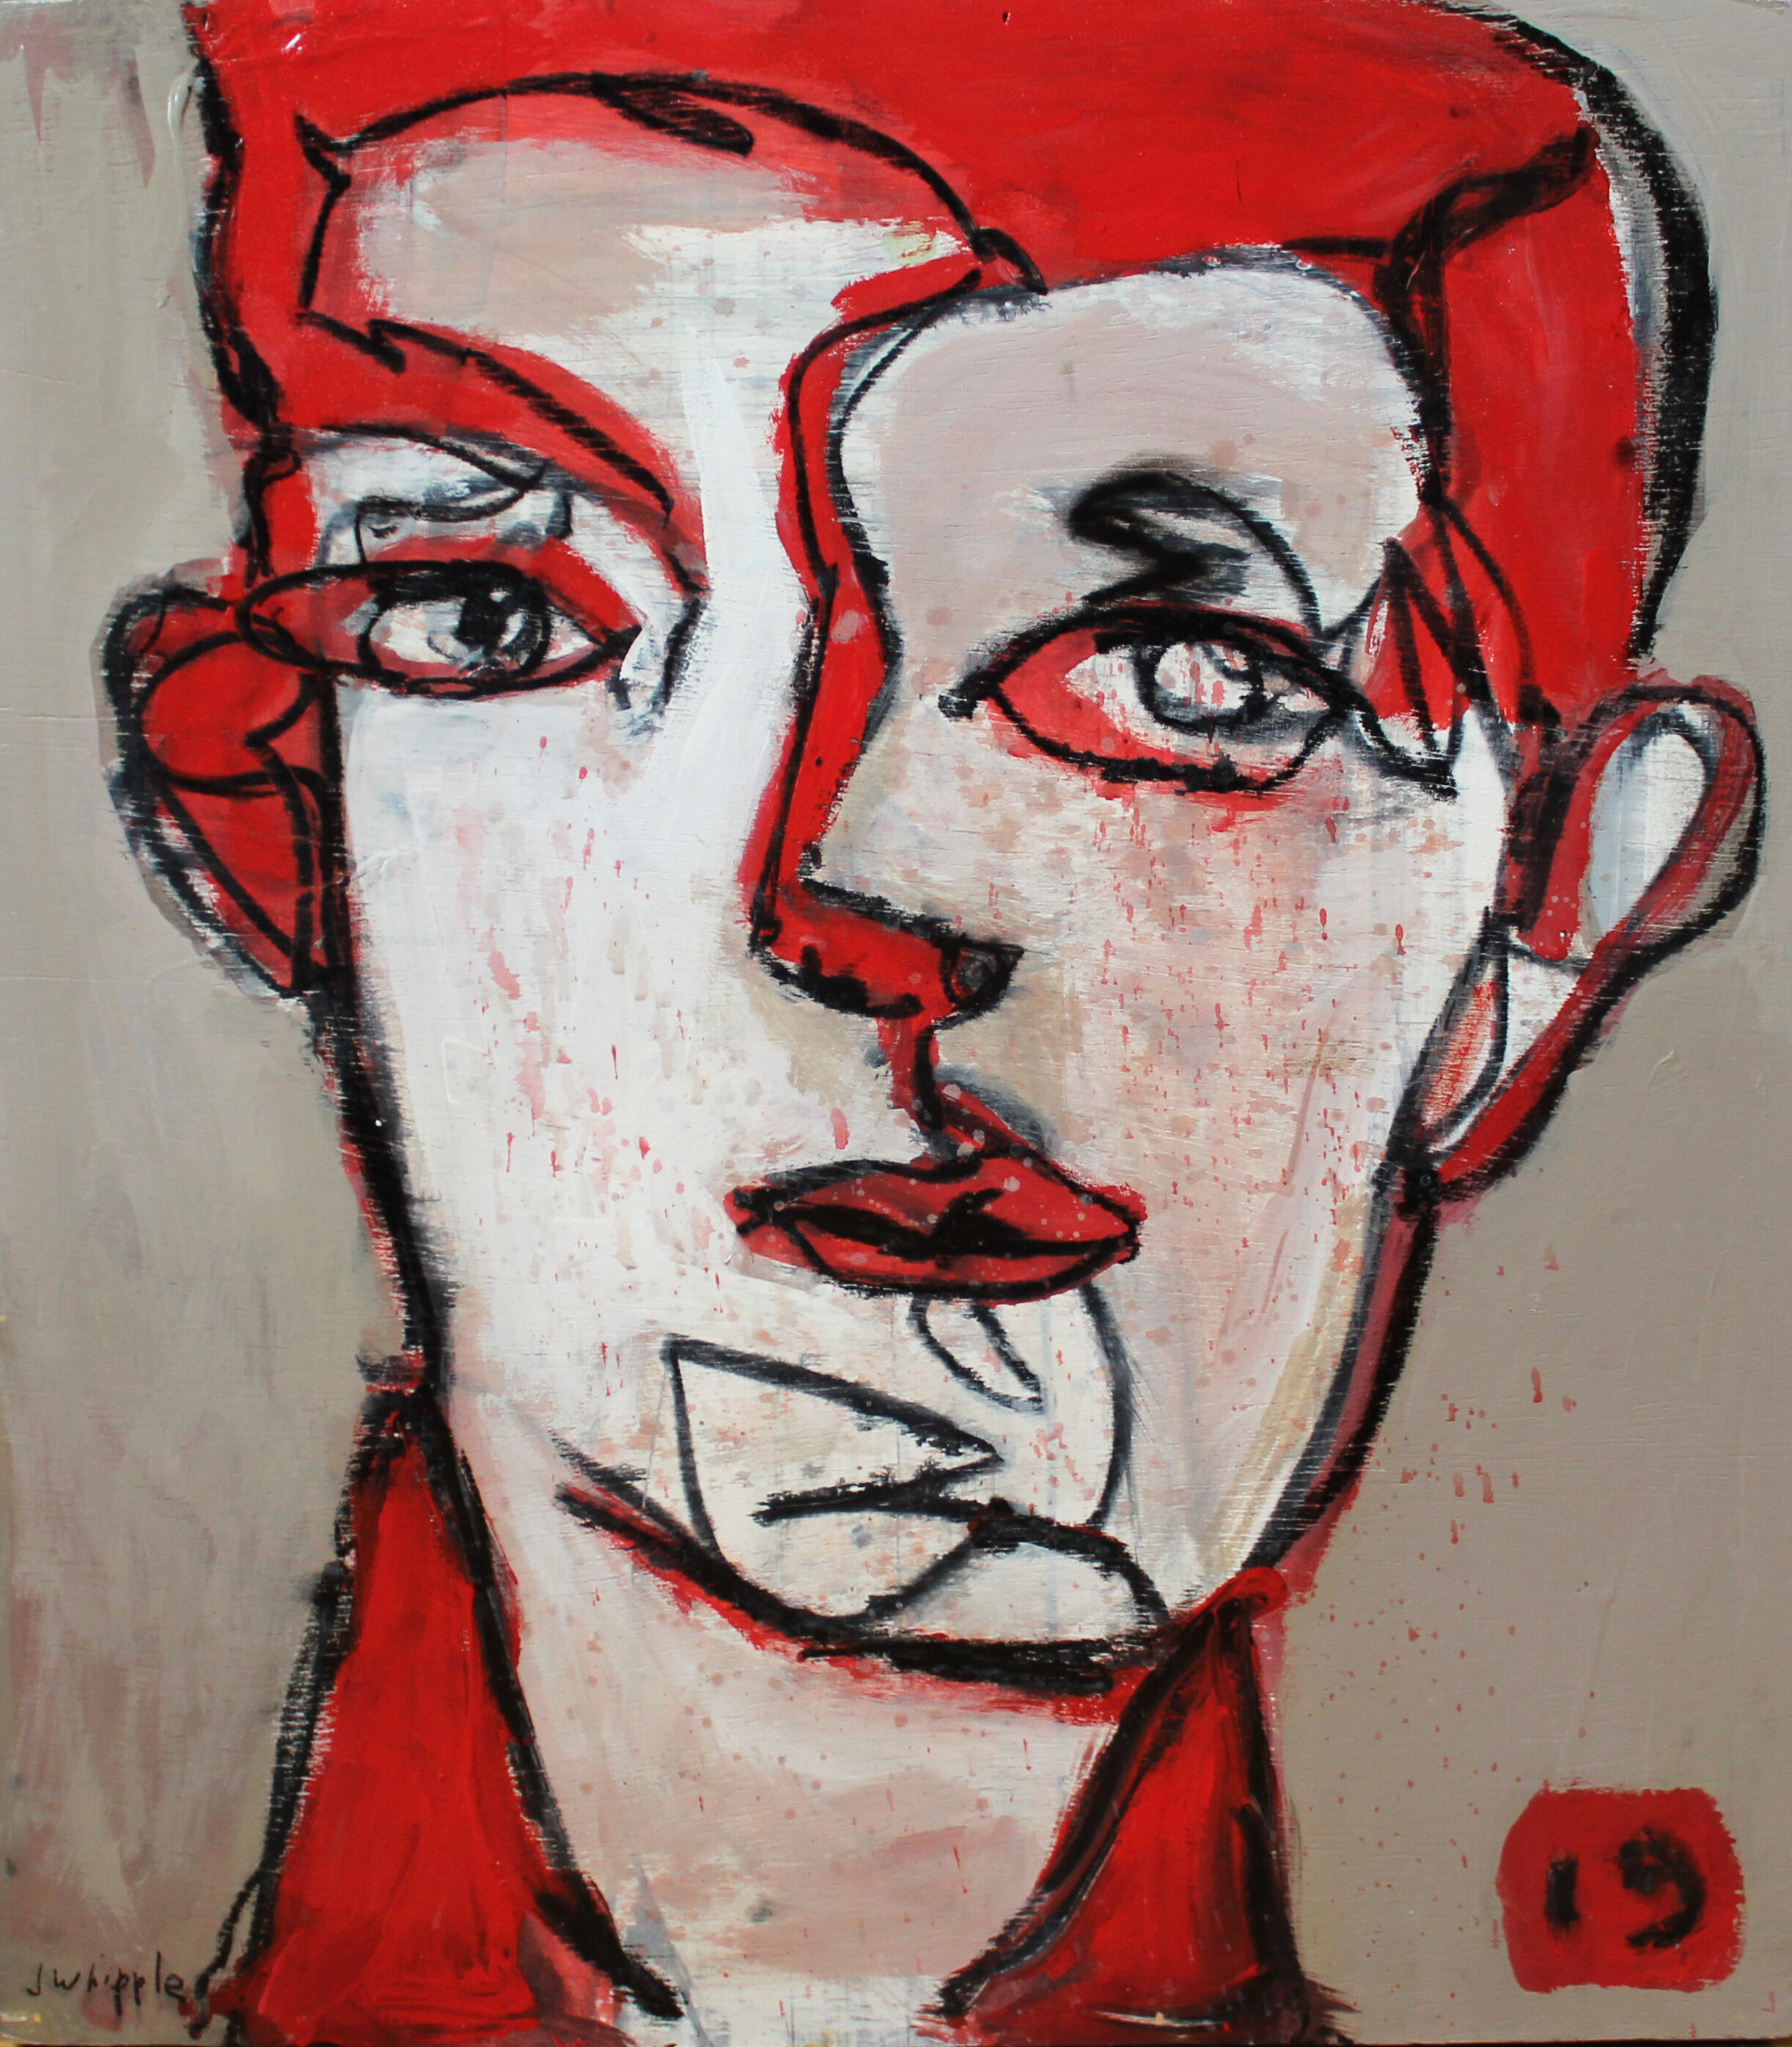 Face Series 2 (Red Man)